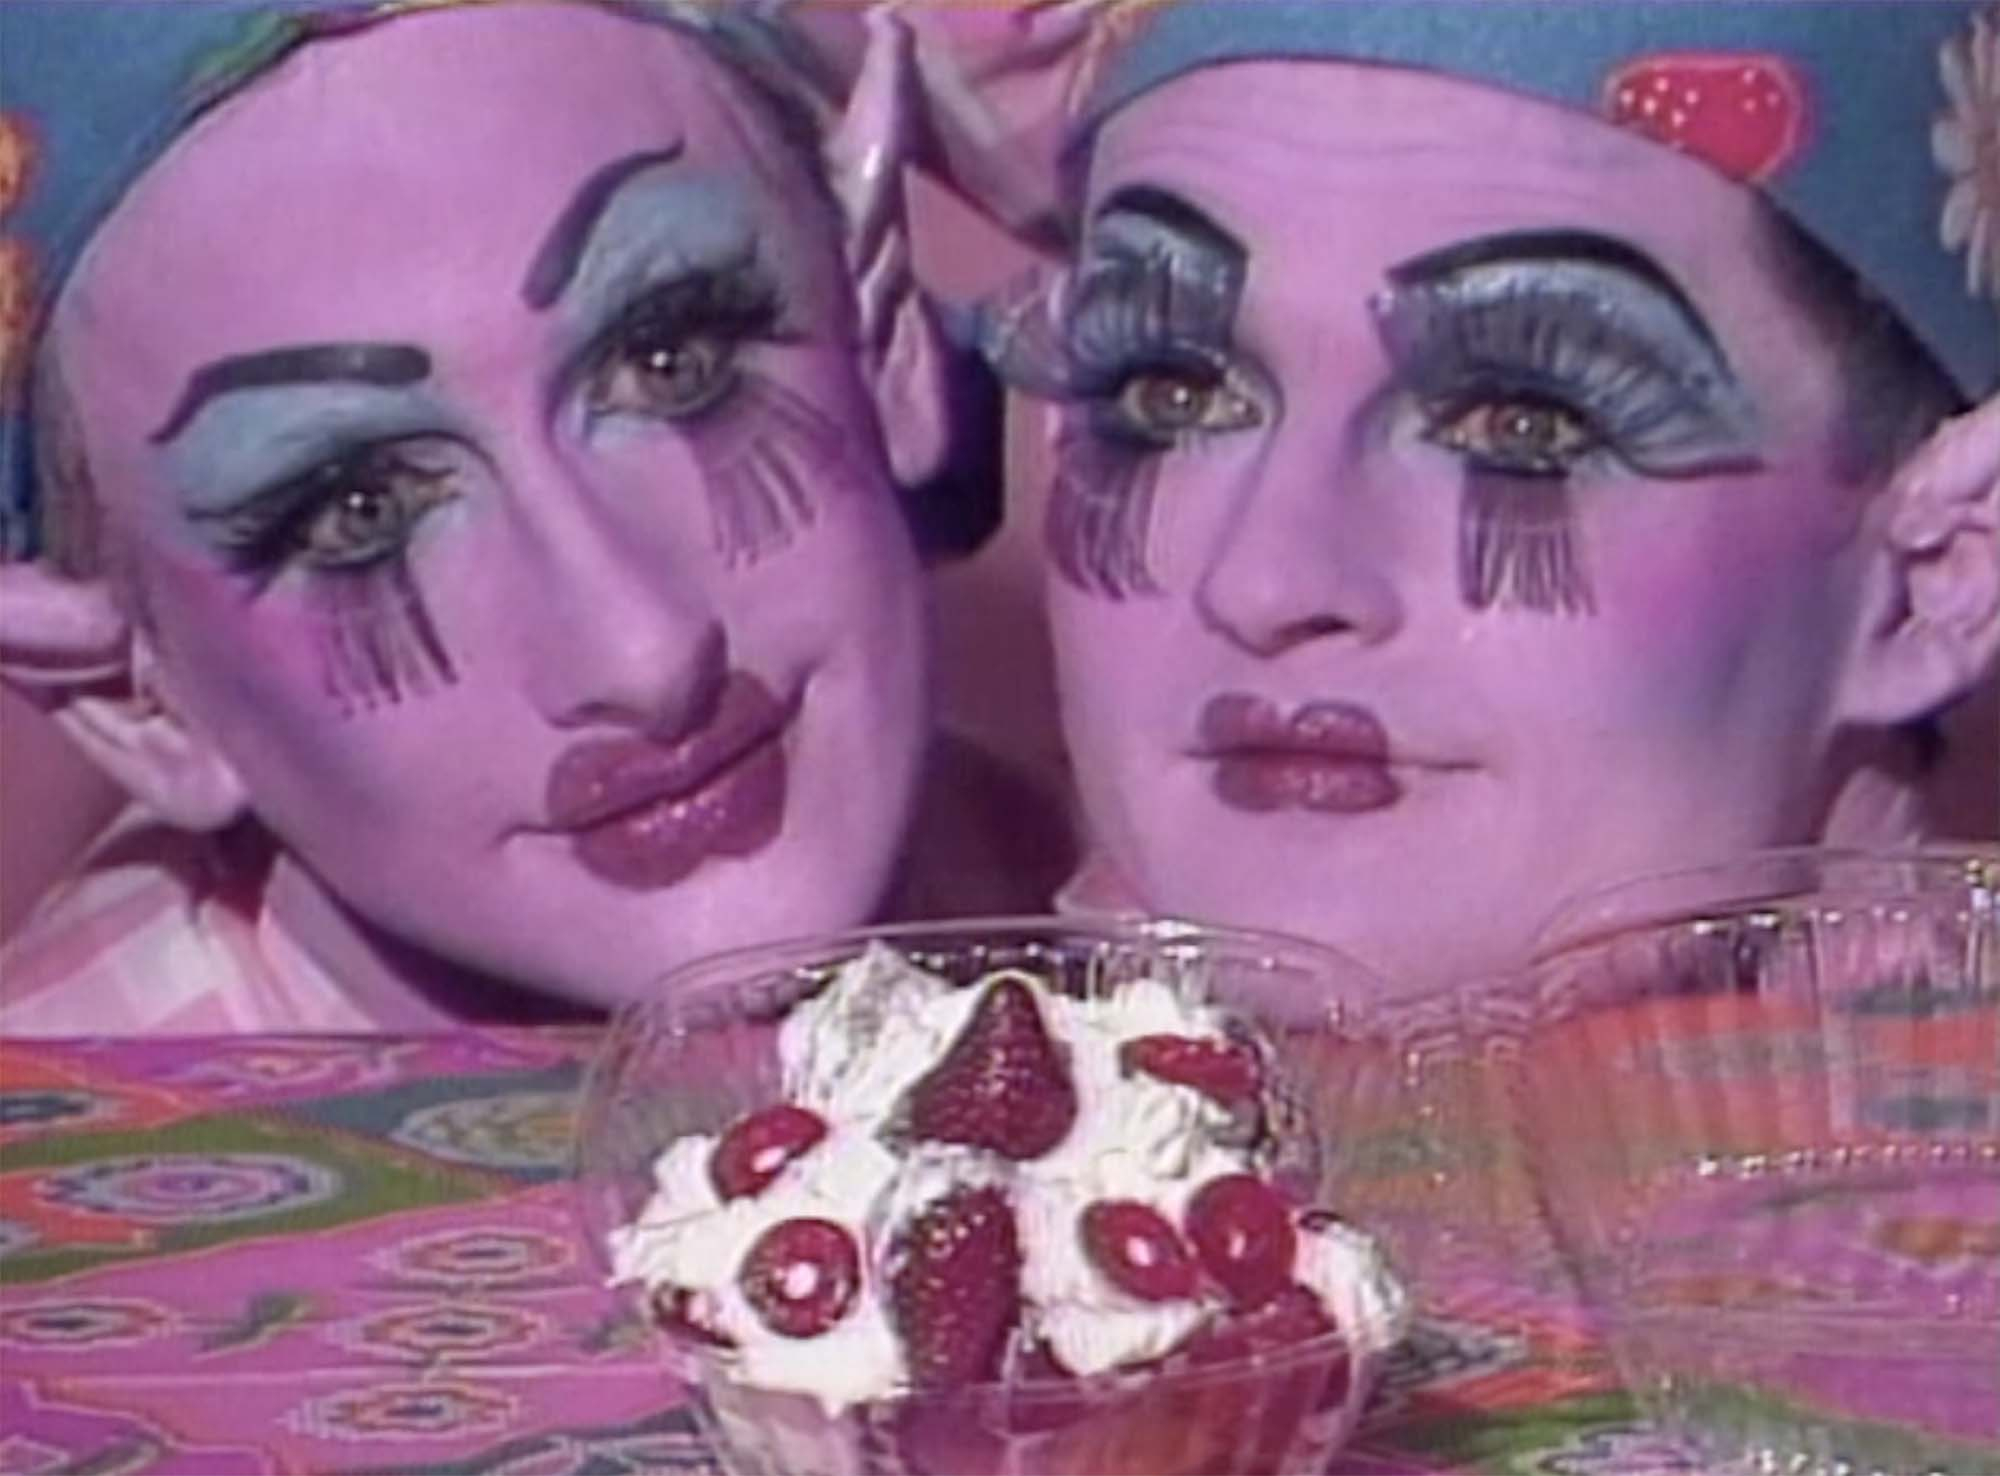 """Tom Rubnitz, """"Strawberry Short-Cut"""" (1989). Image copyright of the artist, courtesy of Video Data Bank, www.vdb.org, School of the Art Institute of Chicago"""